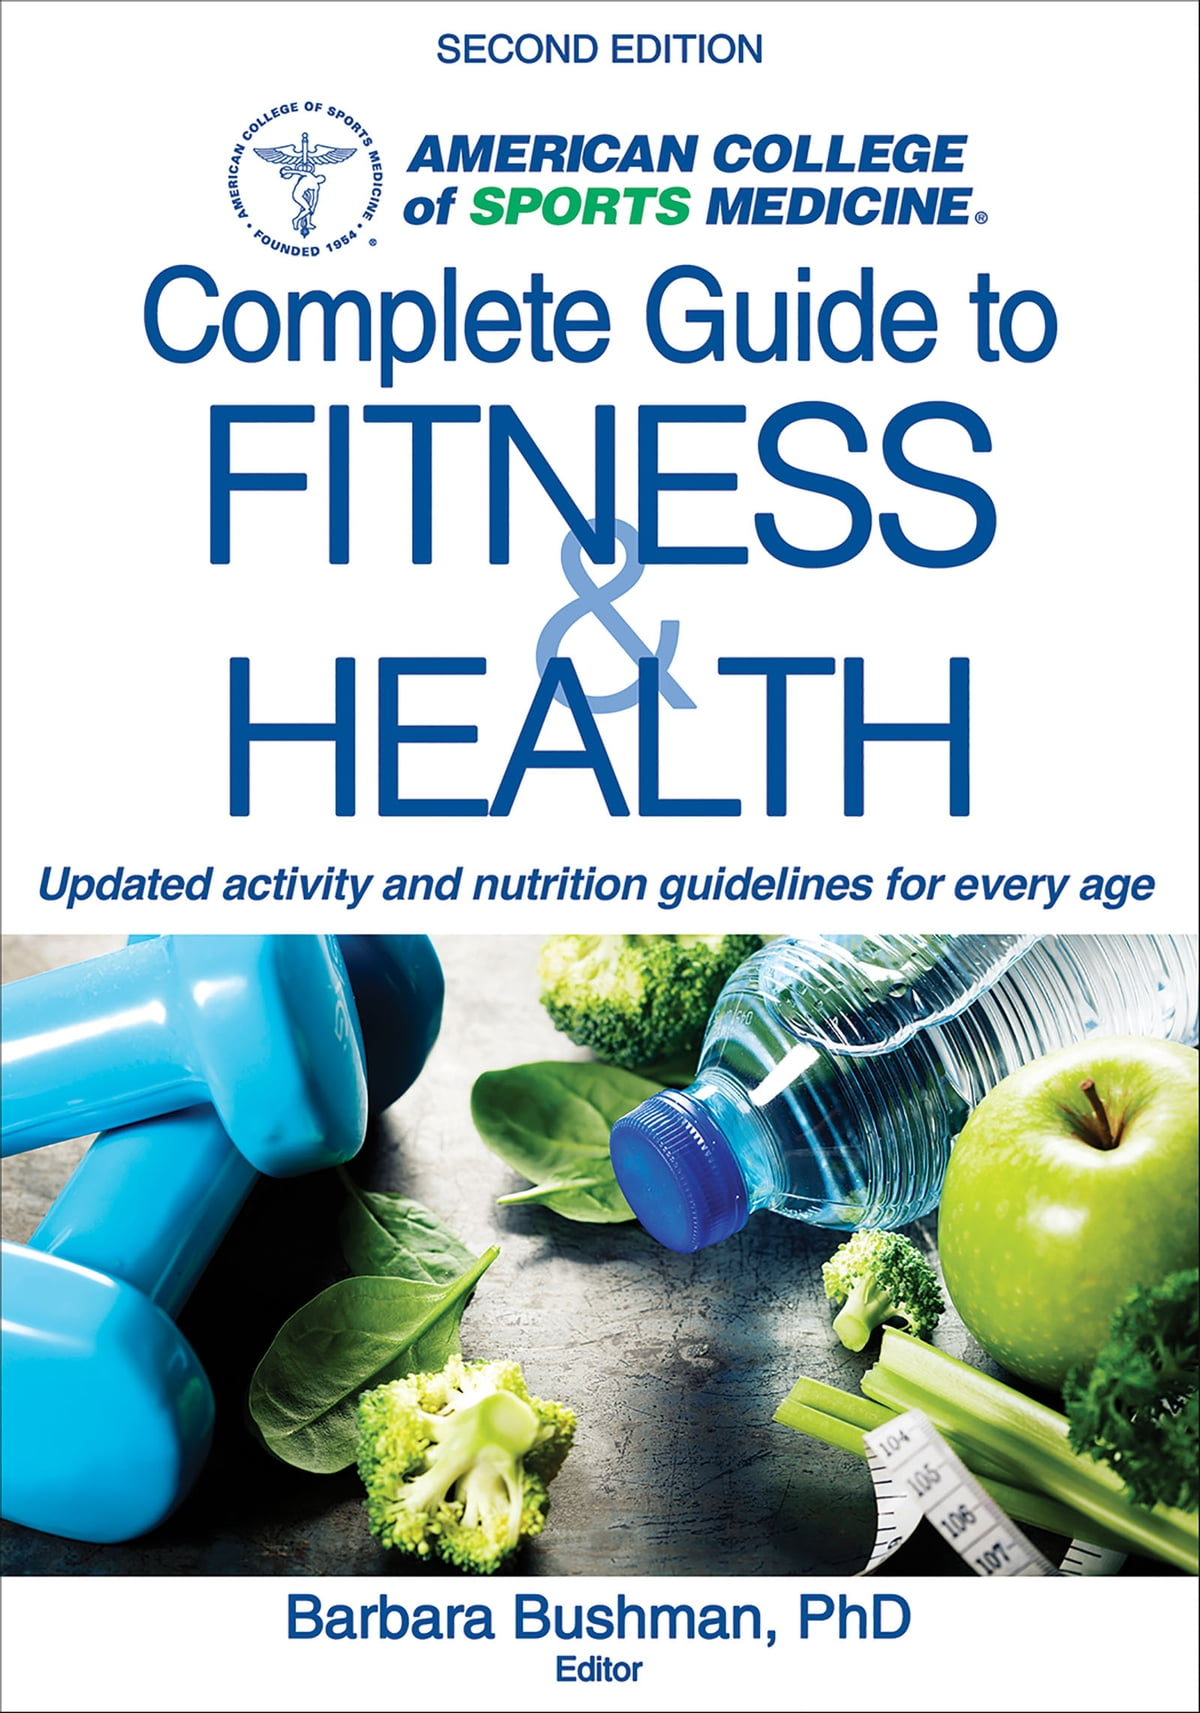 ACSM's Complete Guide to Fitness & Health eBook by American College of Sports  Medicine - 9781492586289 | Rakuten Kobo